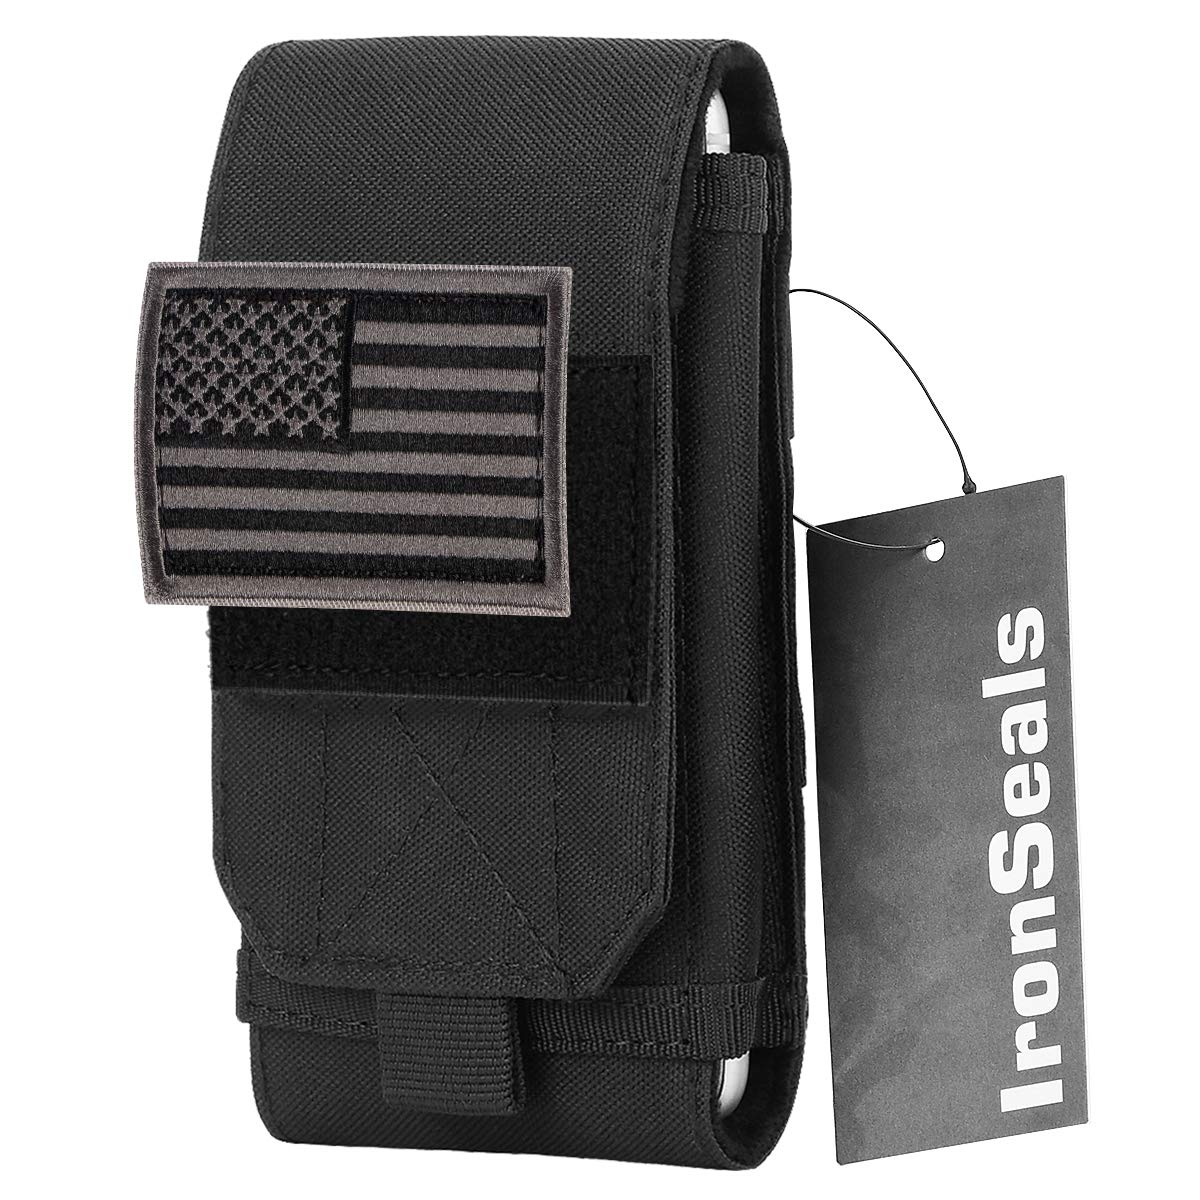 Large Heavy Duty Belt Pouch Phone Holster with Flag Patch for iPhone 12 Pro Max//11 Pro Max//11//XS Max//X//8 Plus//8 Galaxy S9 Plus//S9 Samsung Note 10 Plus//10//9//8 IronSeals Tactical Molle Pouch